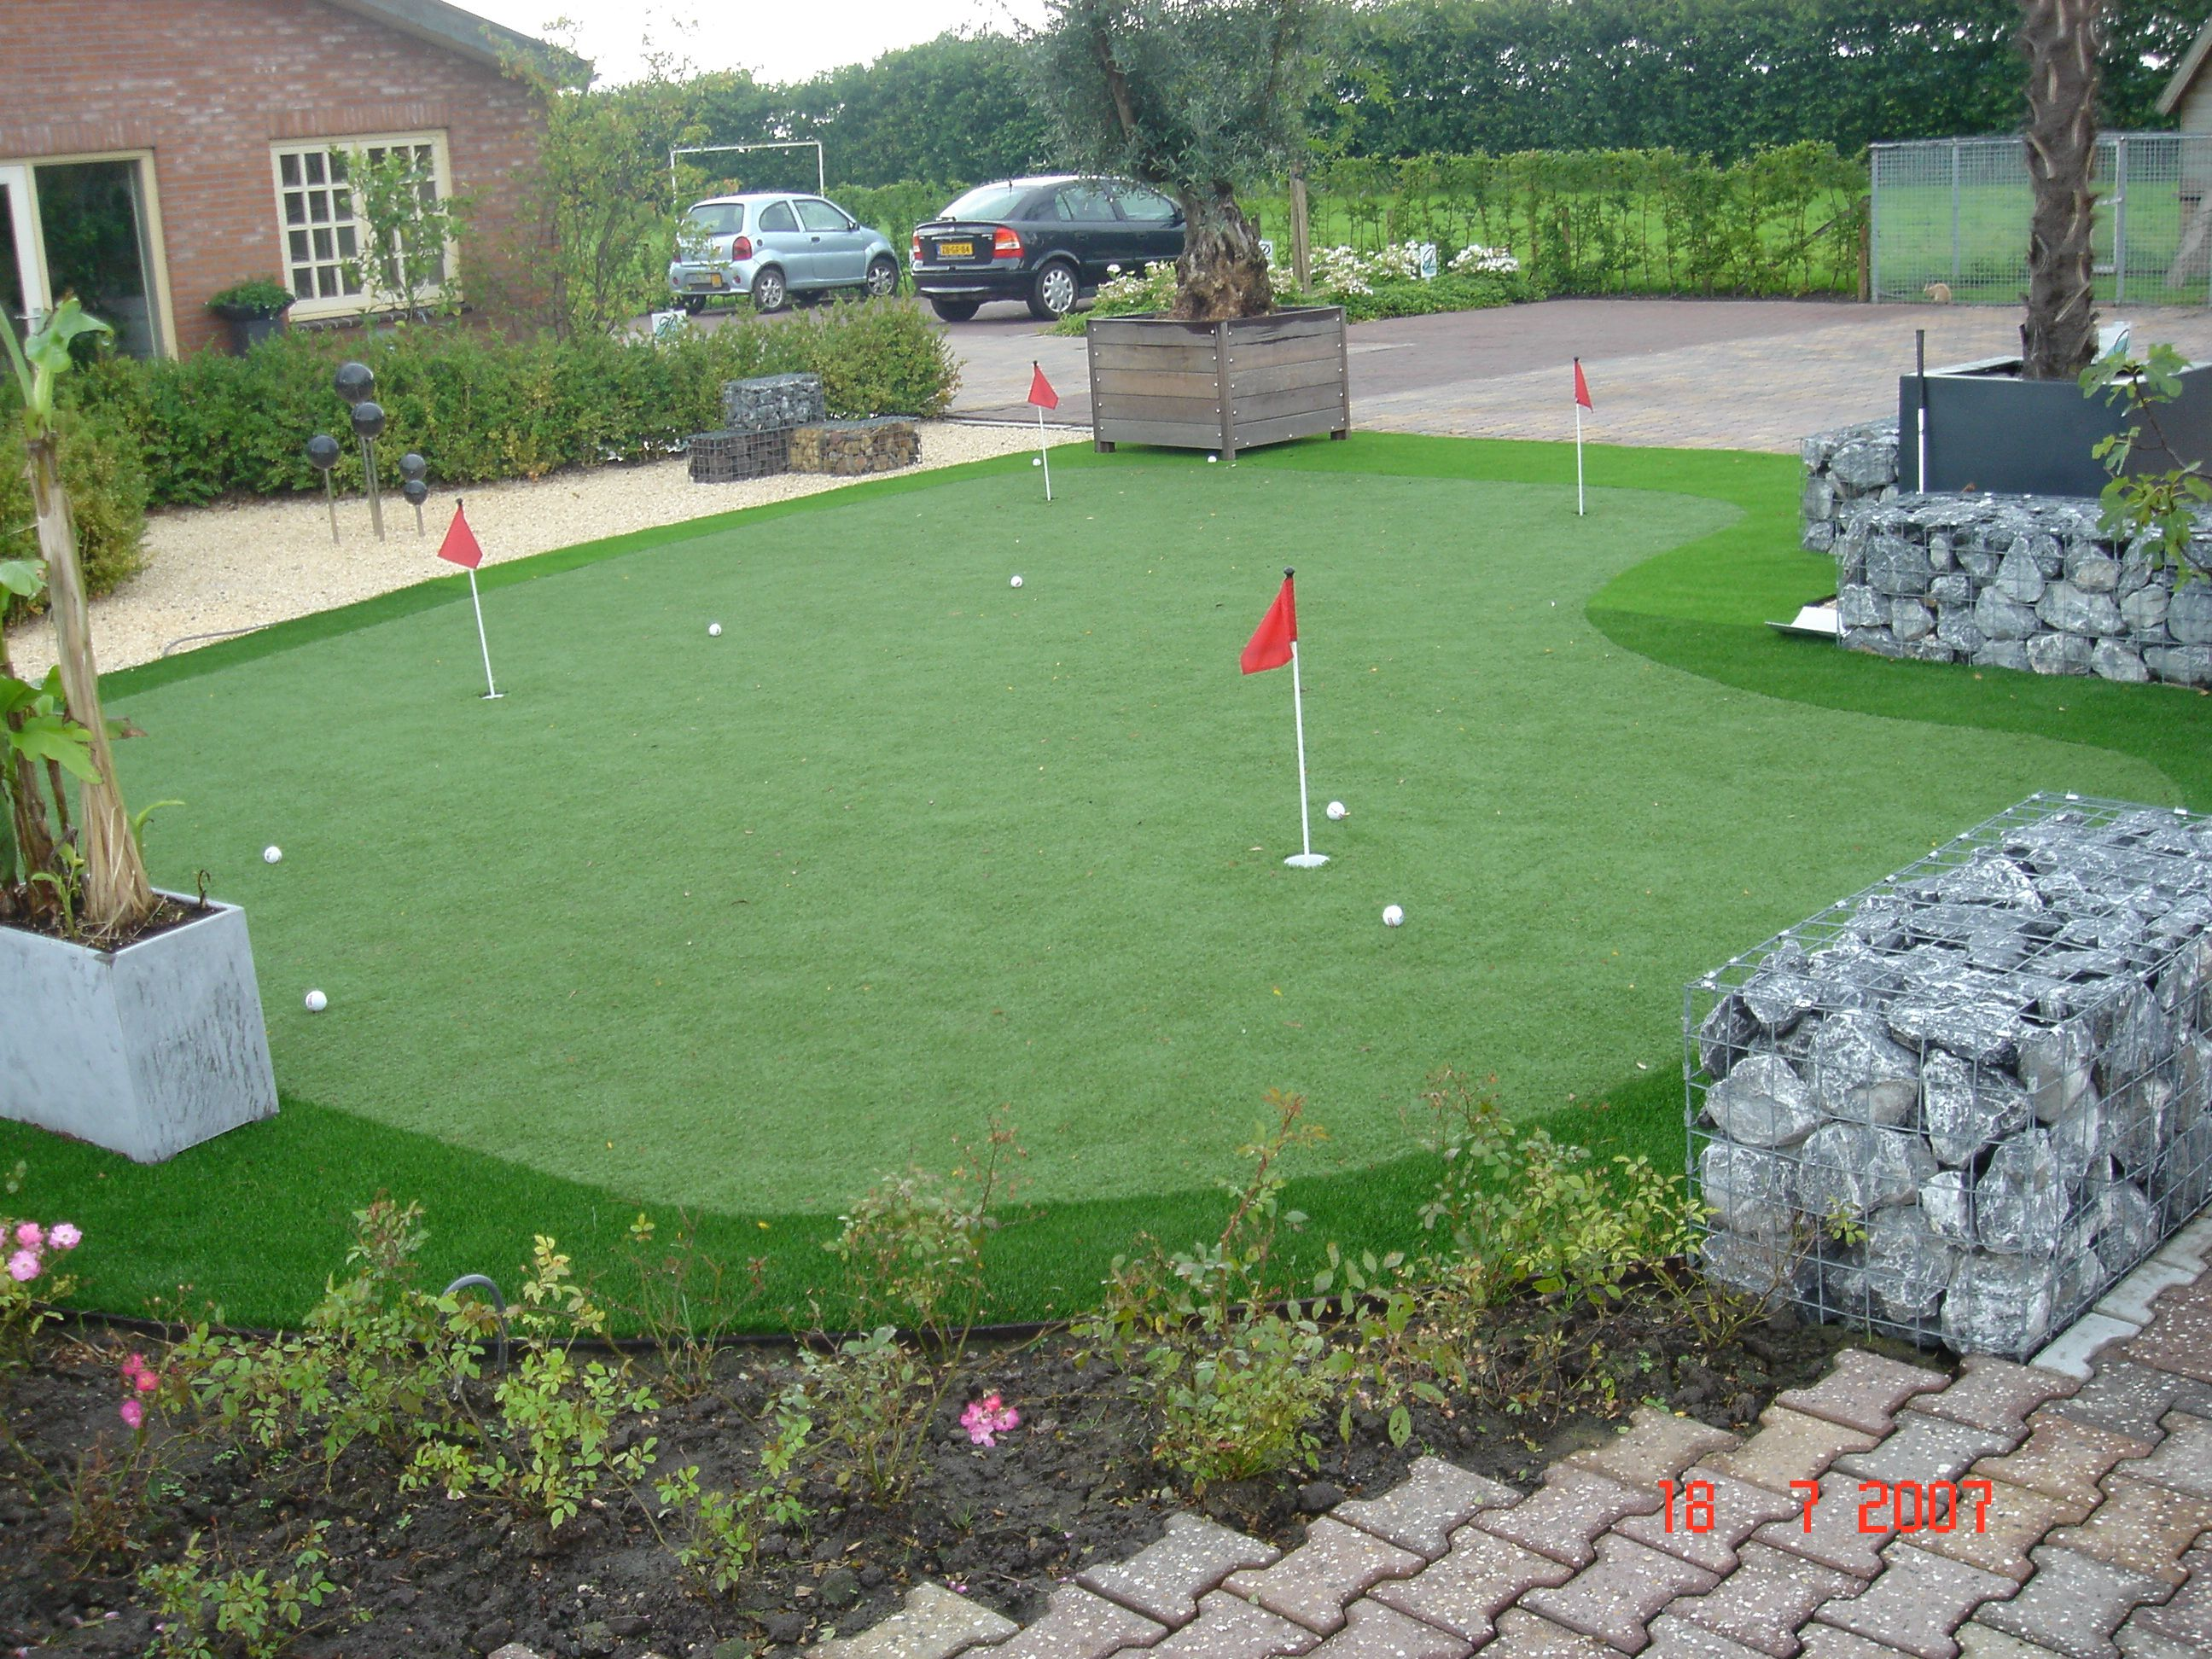 putting green de golf con cesped artificial